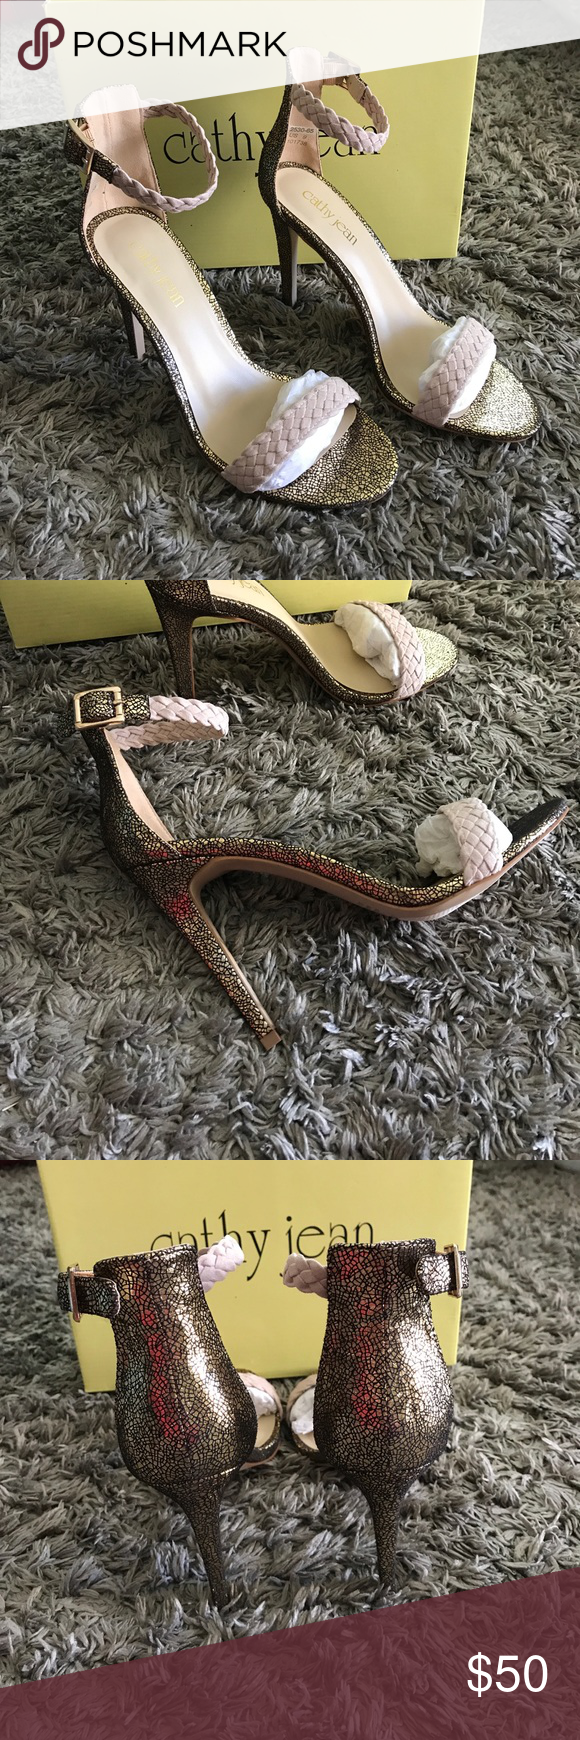 Cathy jean heels Brand new only tried on one .. size 9 .. nude suede and gold metallic.. this shoe is stunning !! Cathy Jean Shoes Heels